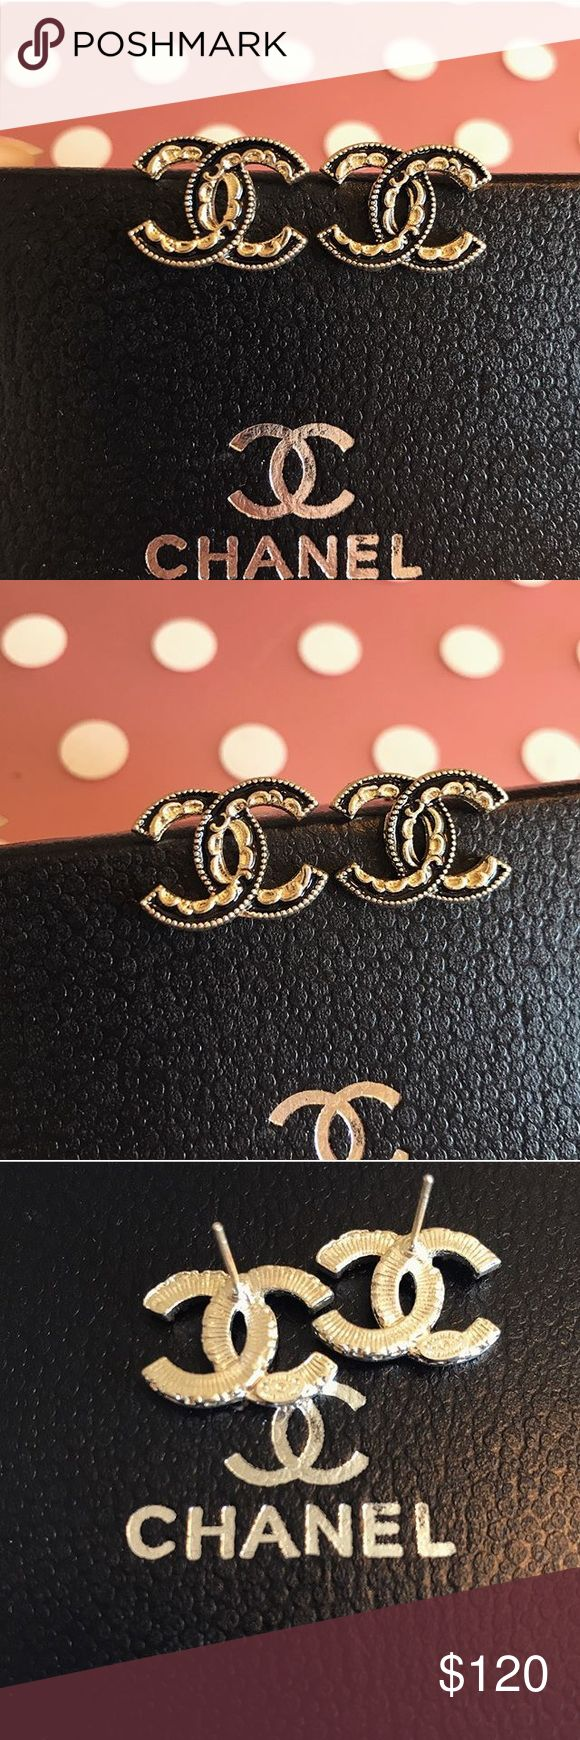 NIB Chanel black gold stud earrings New in box! High quality in-spired Chanel earrings with stamps on the back! Please send me an offers and bundles for discount :) CHANEL Jewelry Earrings